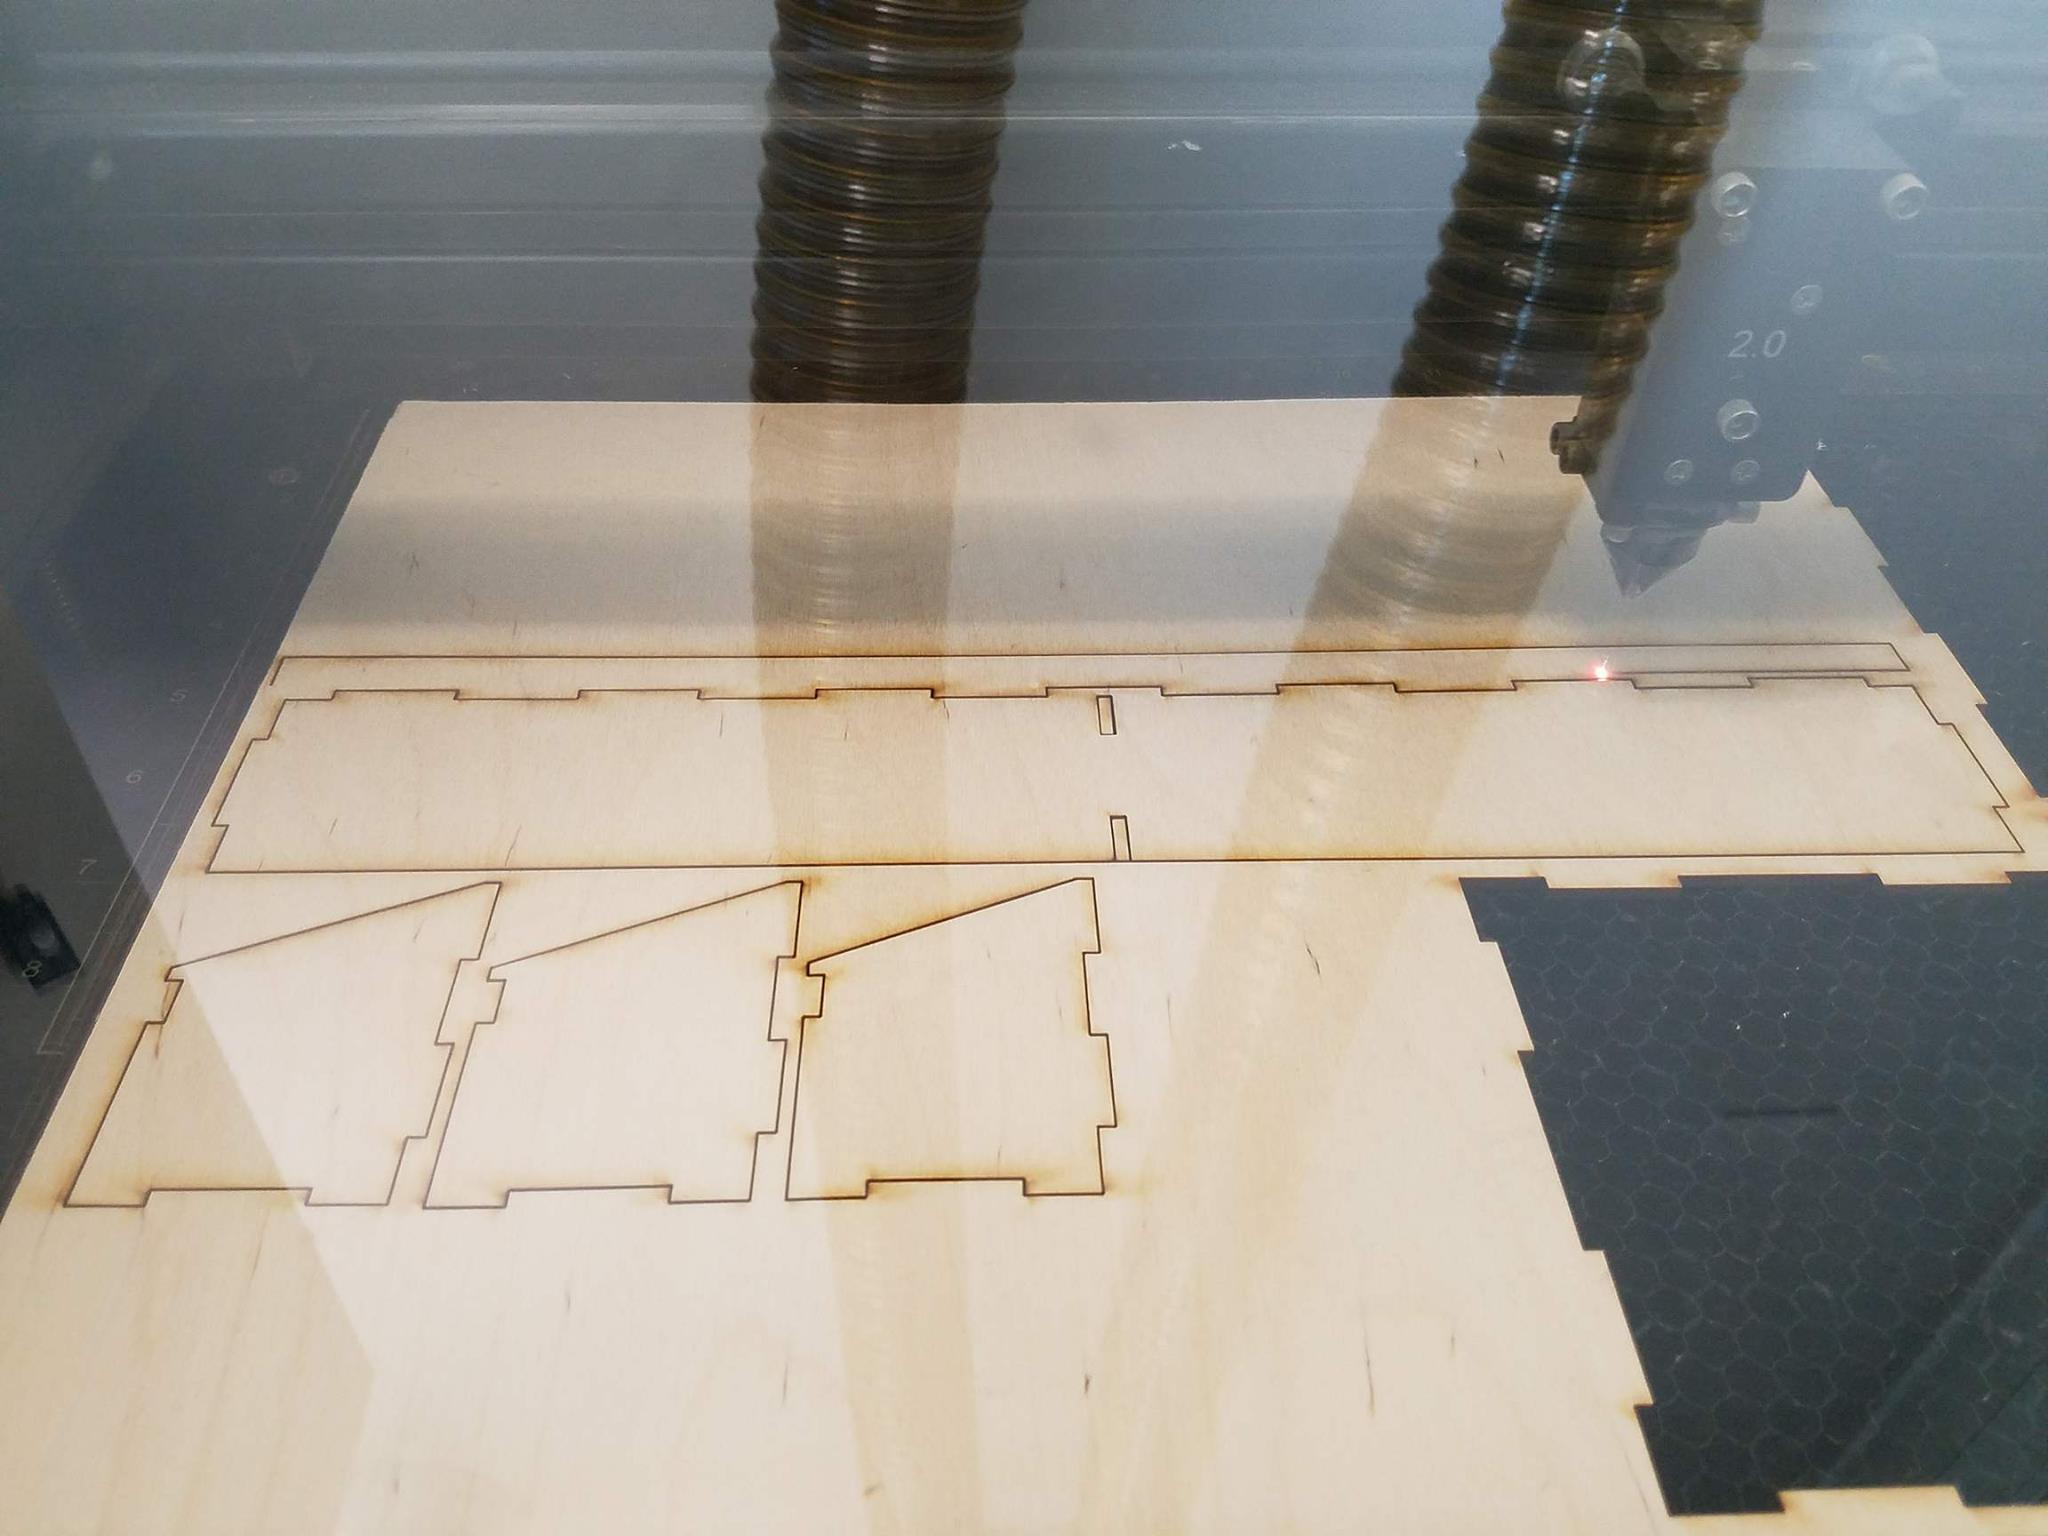 Picture of Laser Cutting the Pieces Out